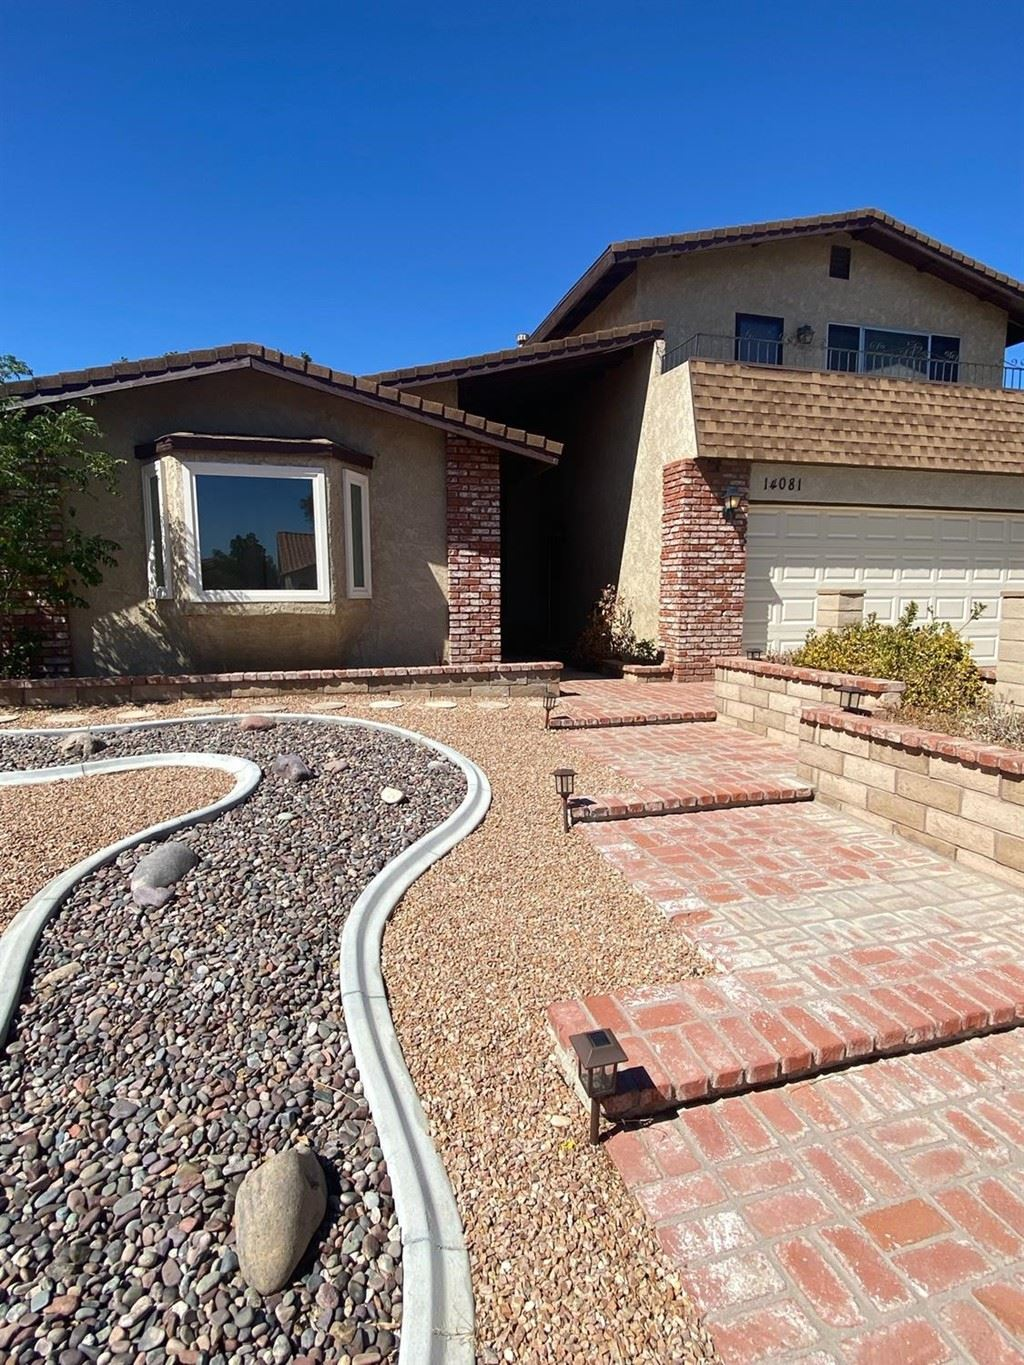 14081 Driftwood Drive, Victorville, CA 92395 - #: 539274